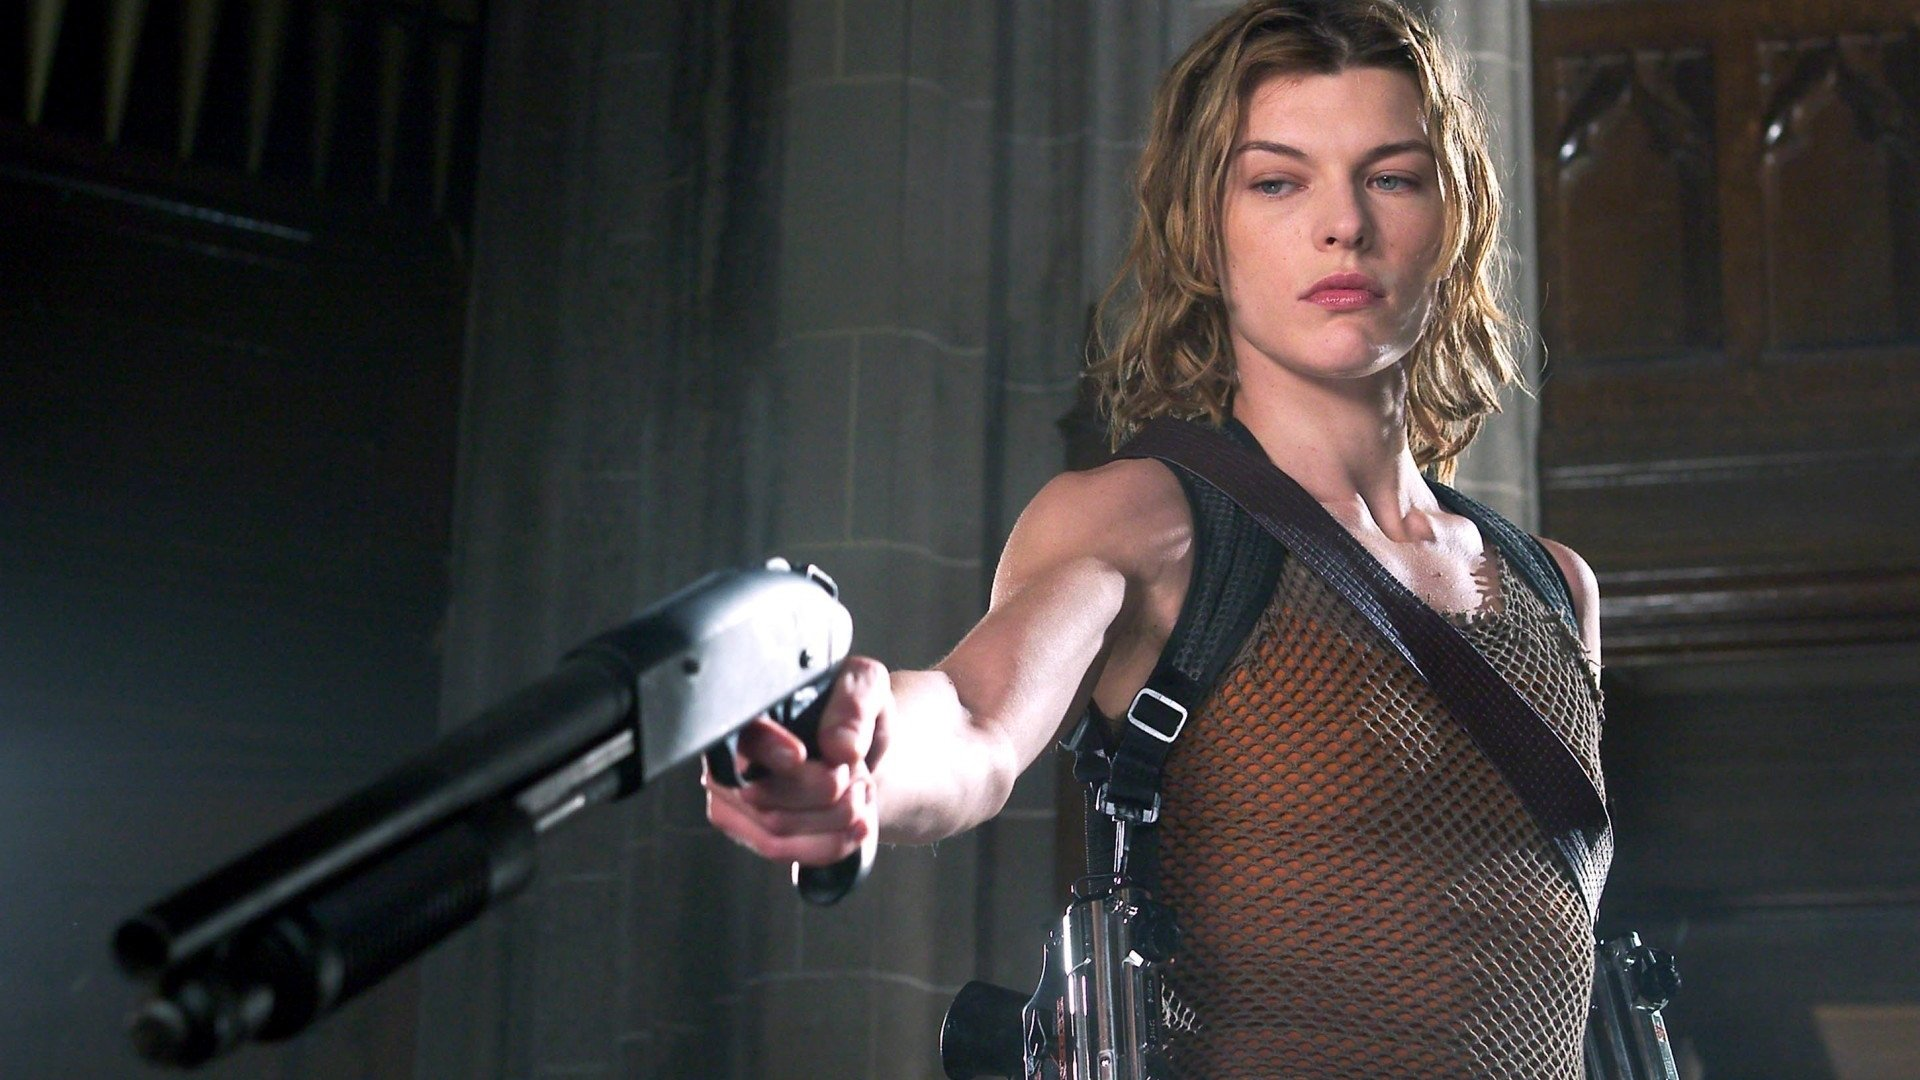 Opinion Resident evil movie girl apologise